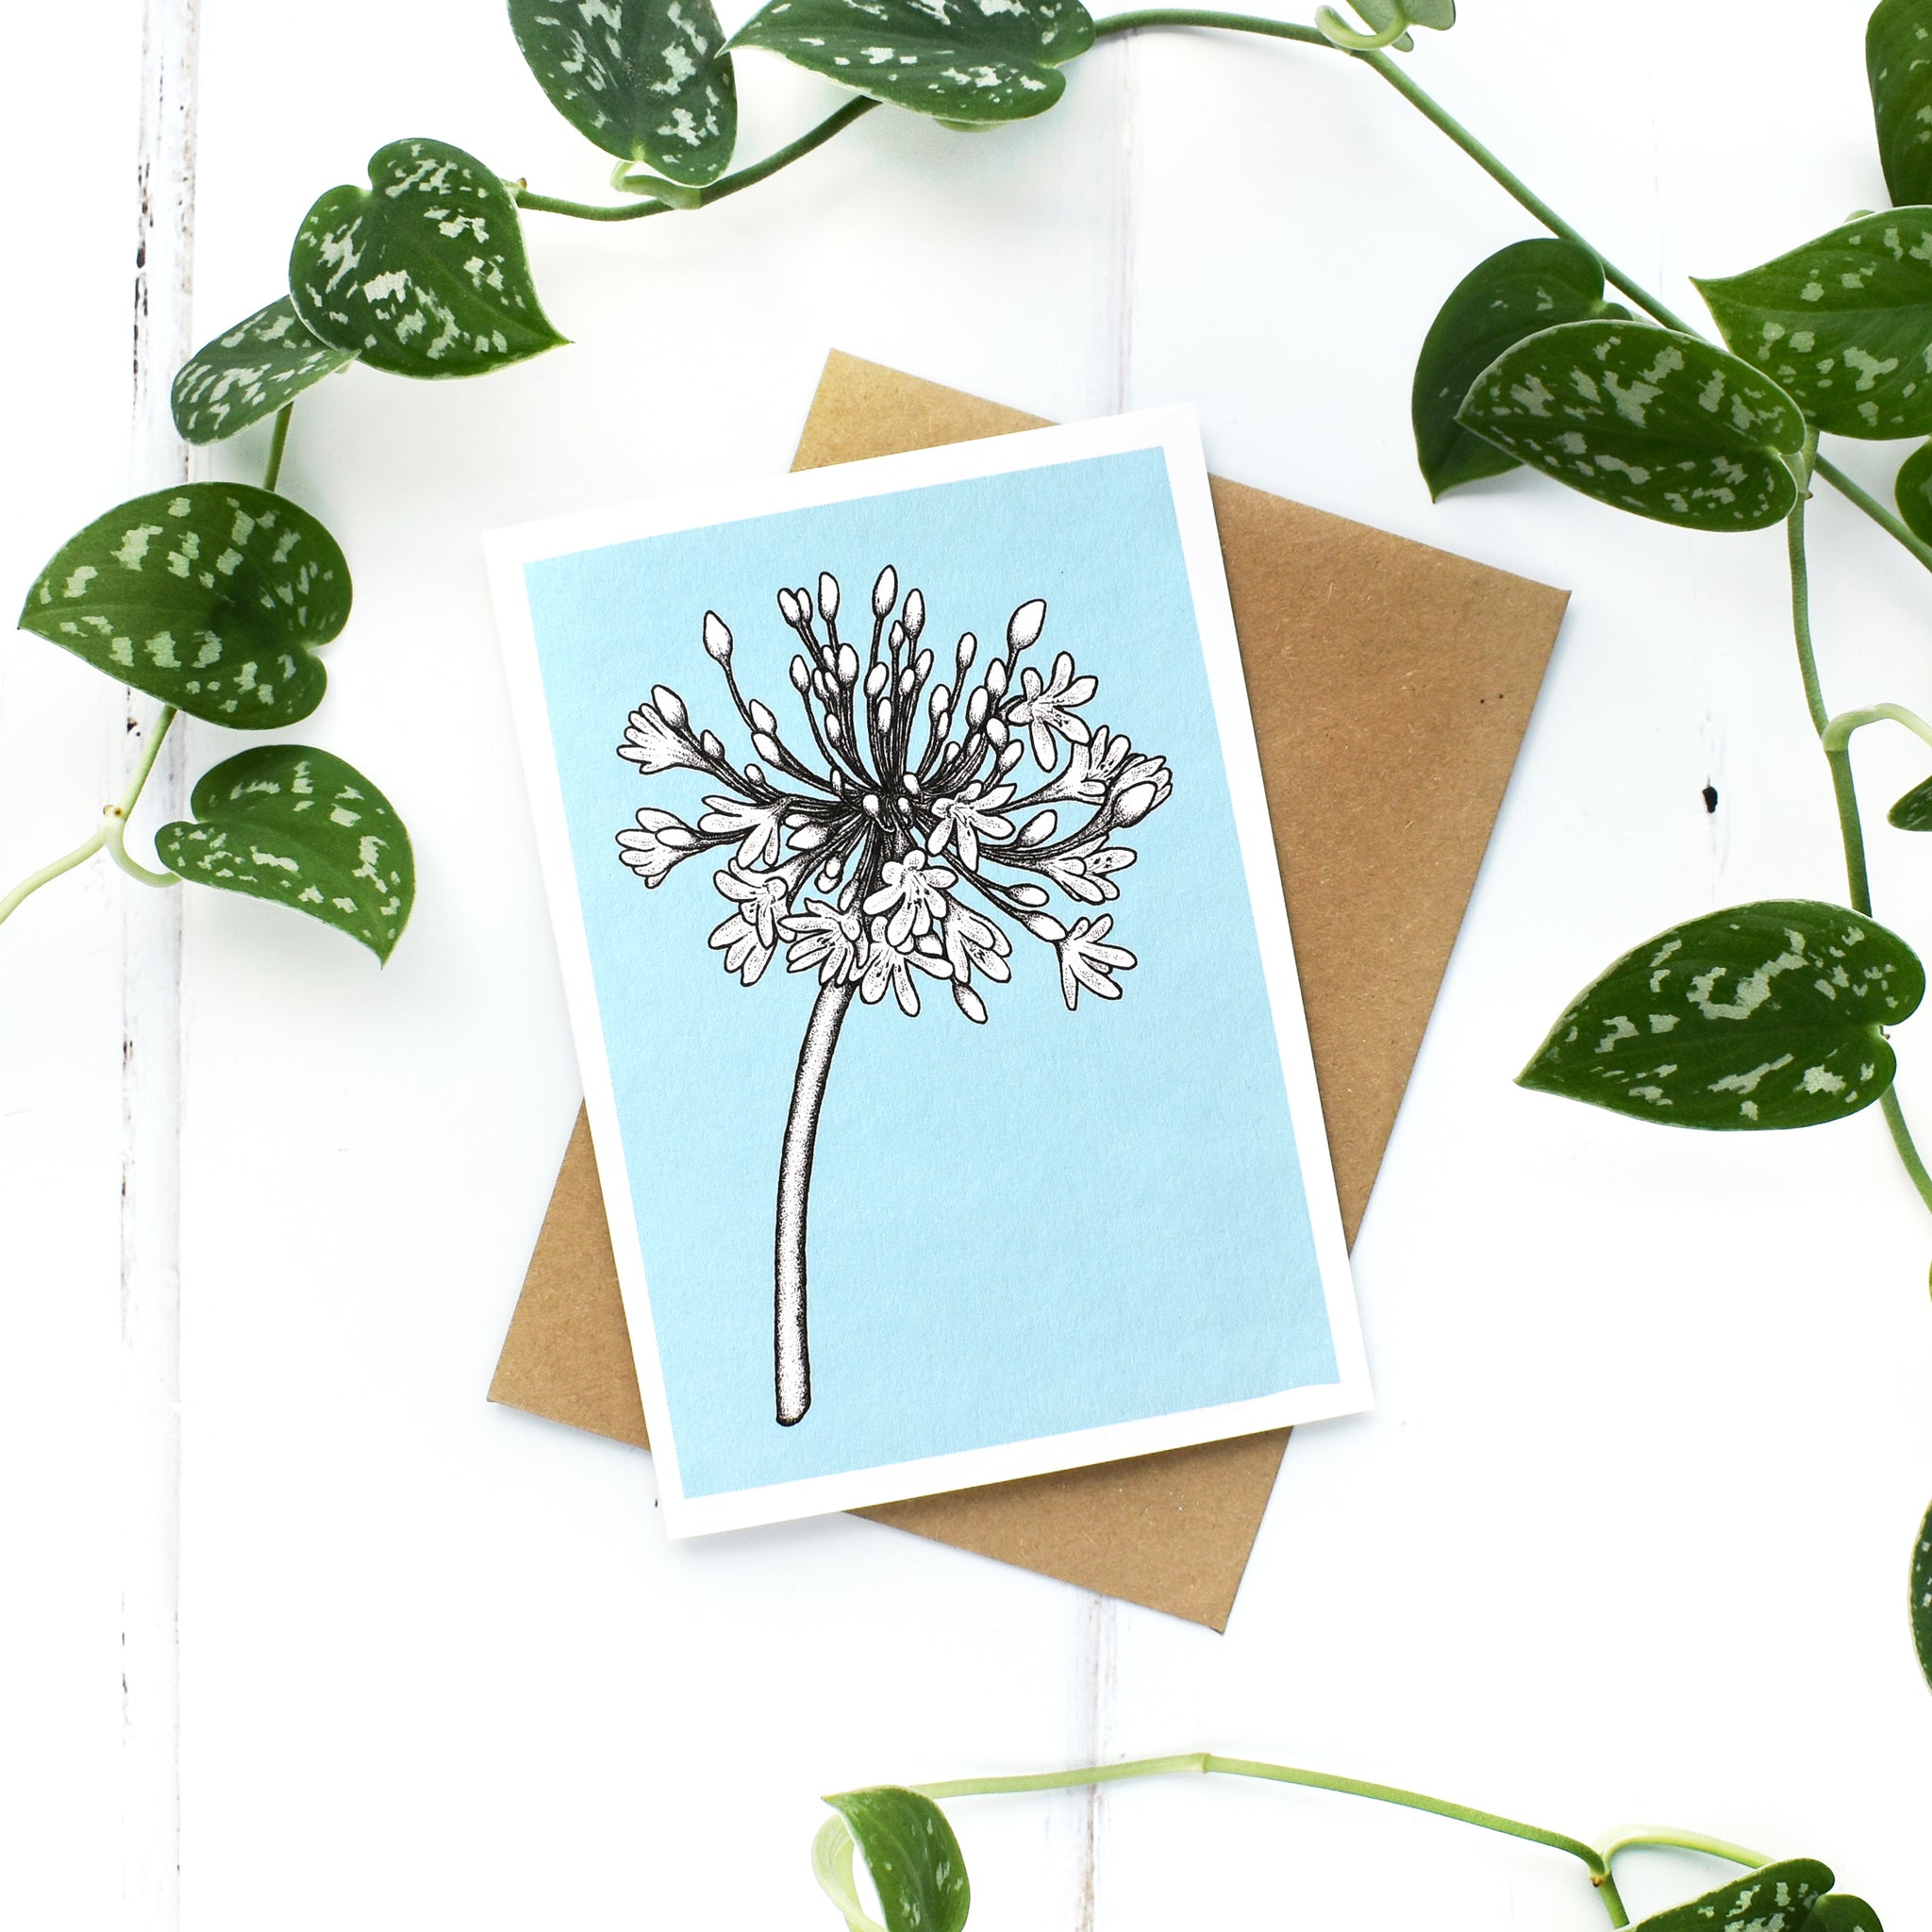 Agapanthus A6 Greeting Card, Blank Inside